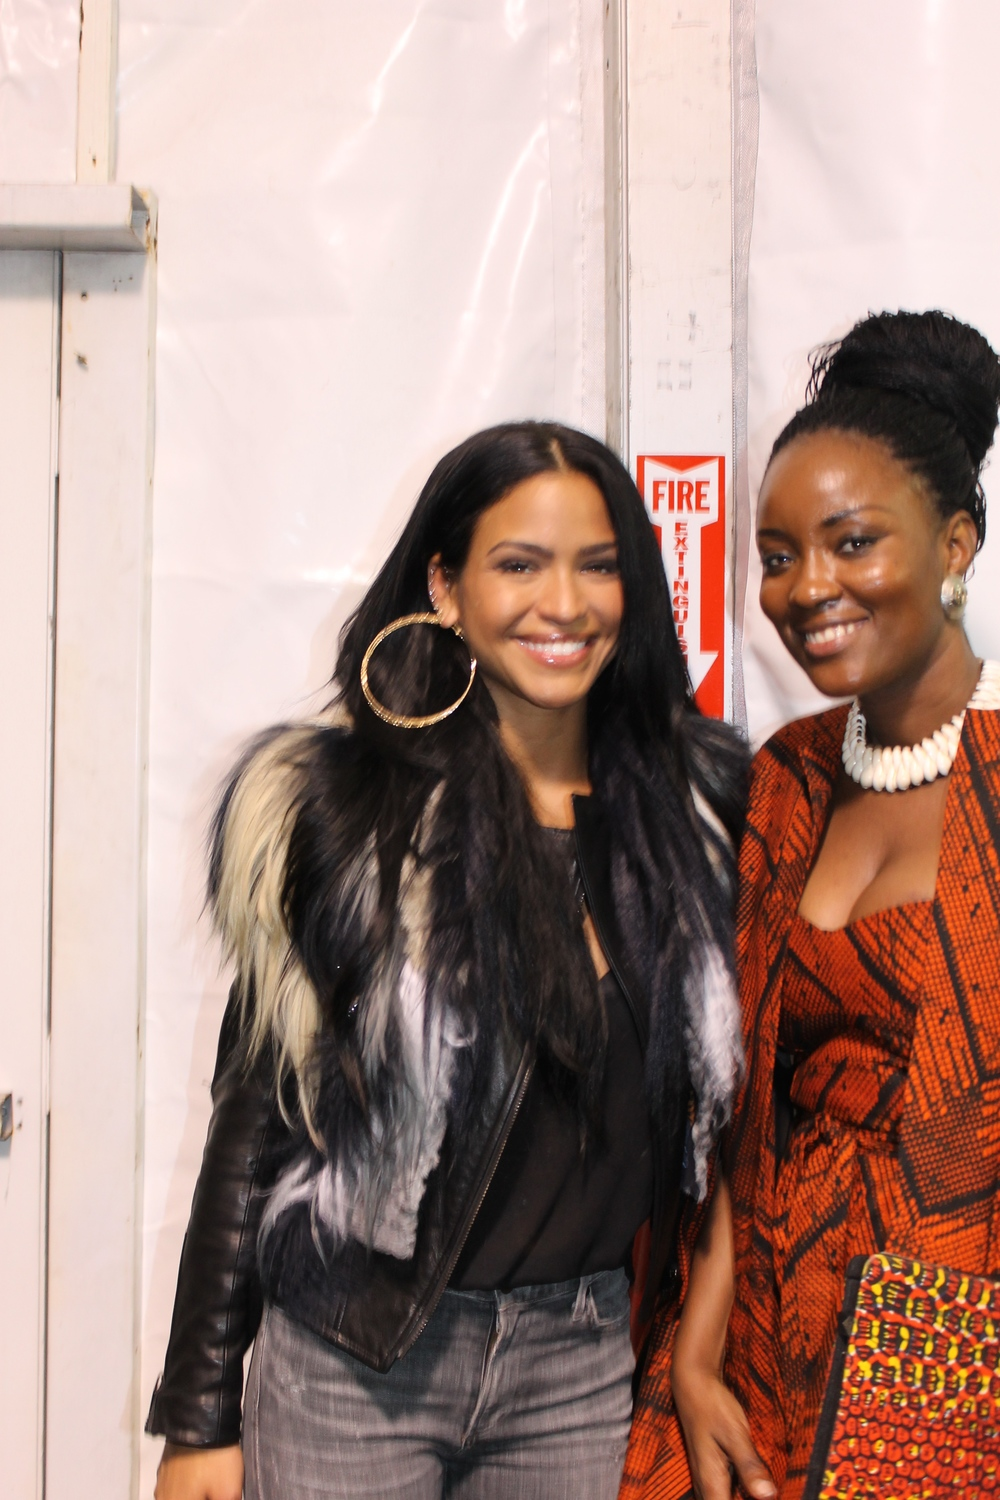 We caught up with the beautiful Cassie backstage.